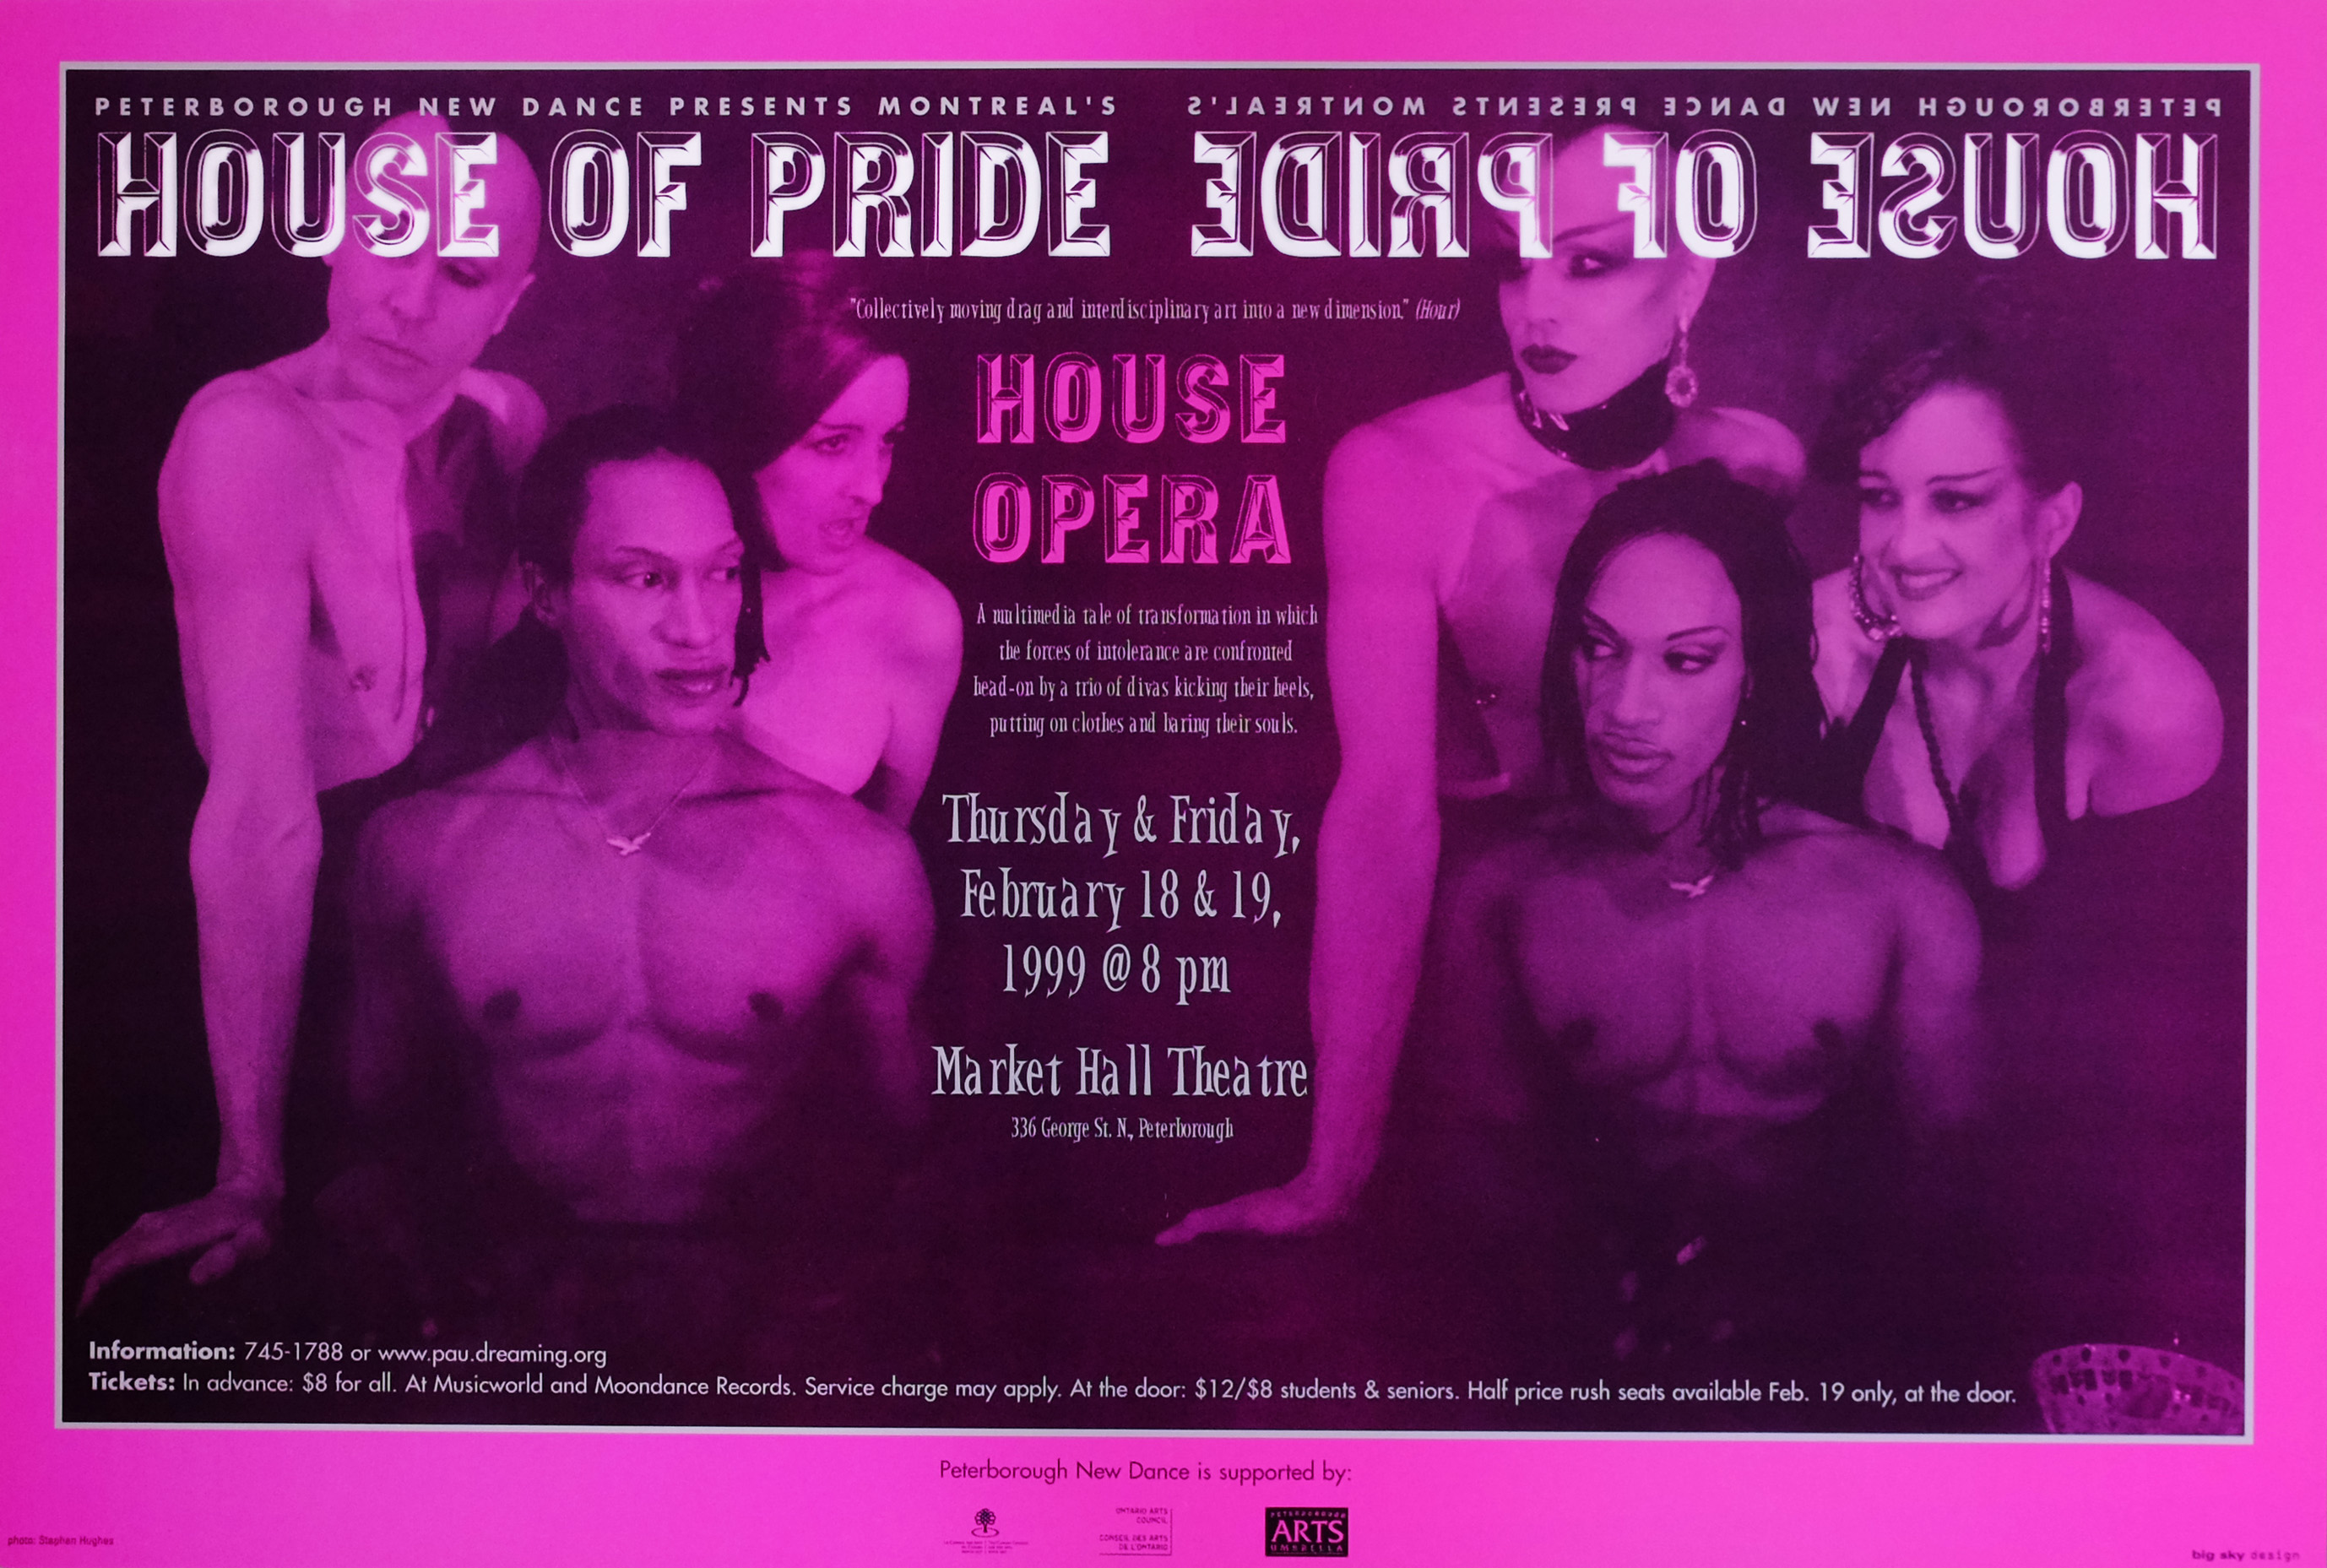 House of Pride – House Opera  in the photo.